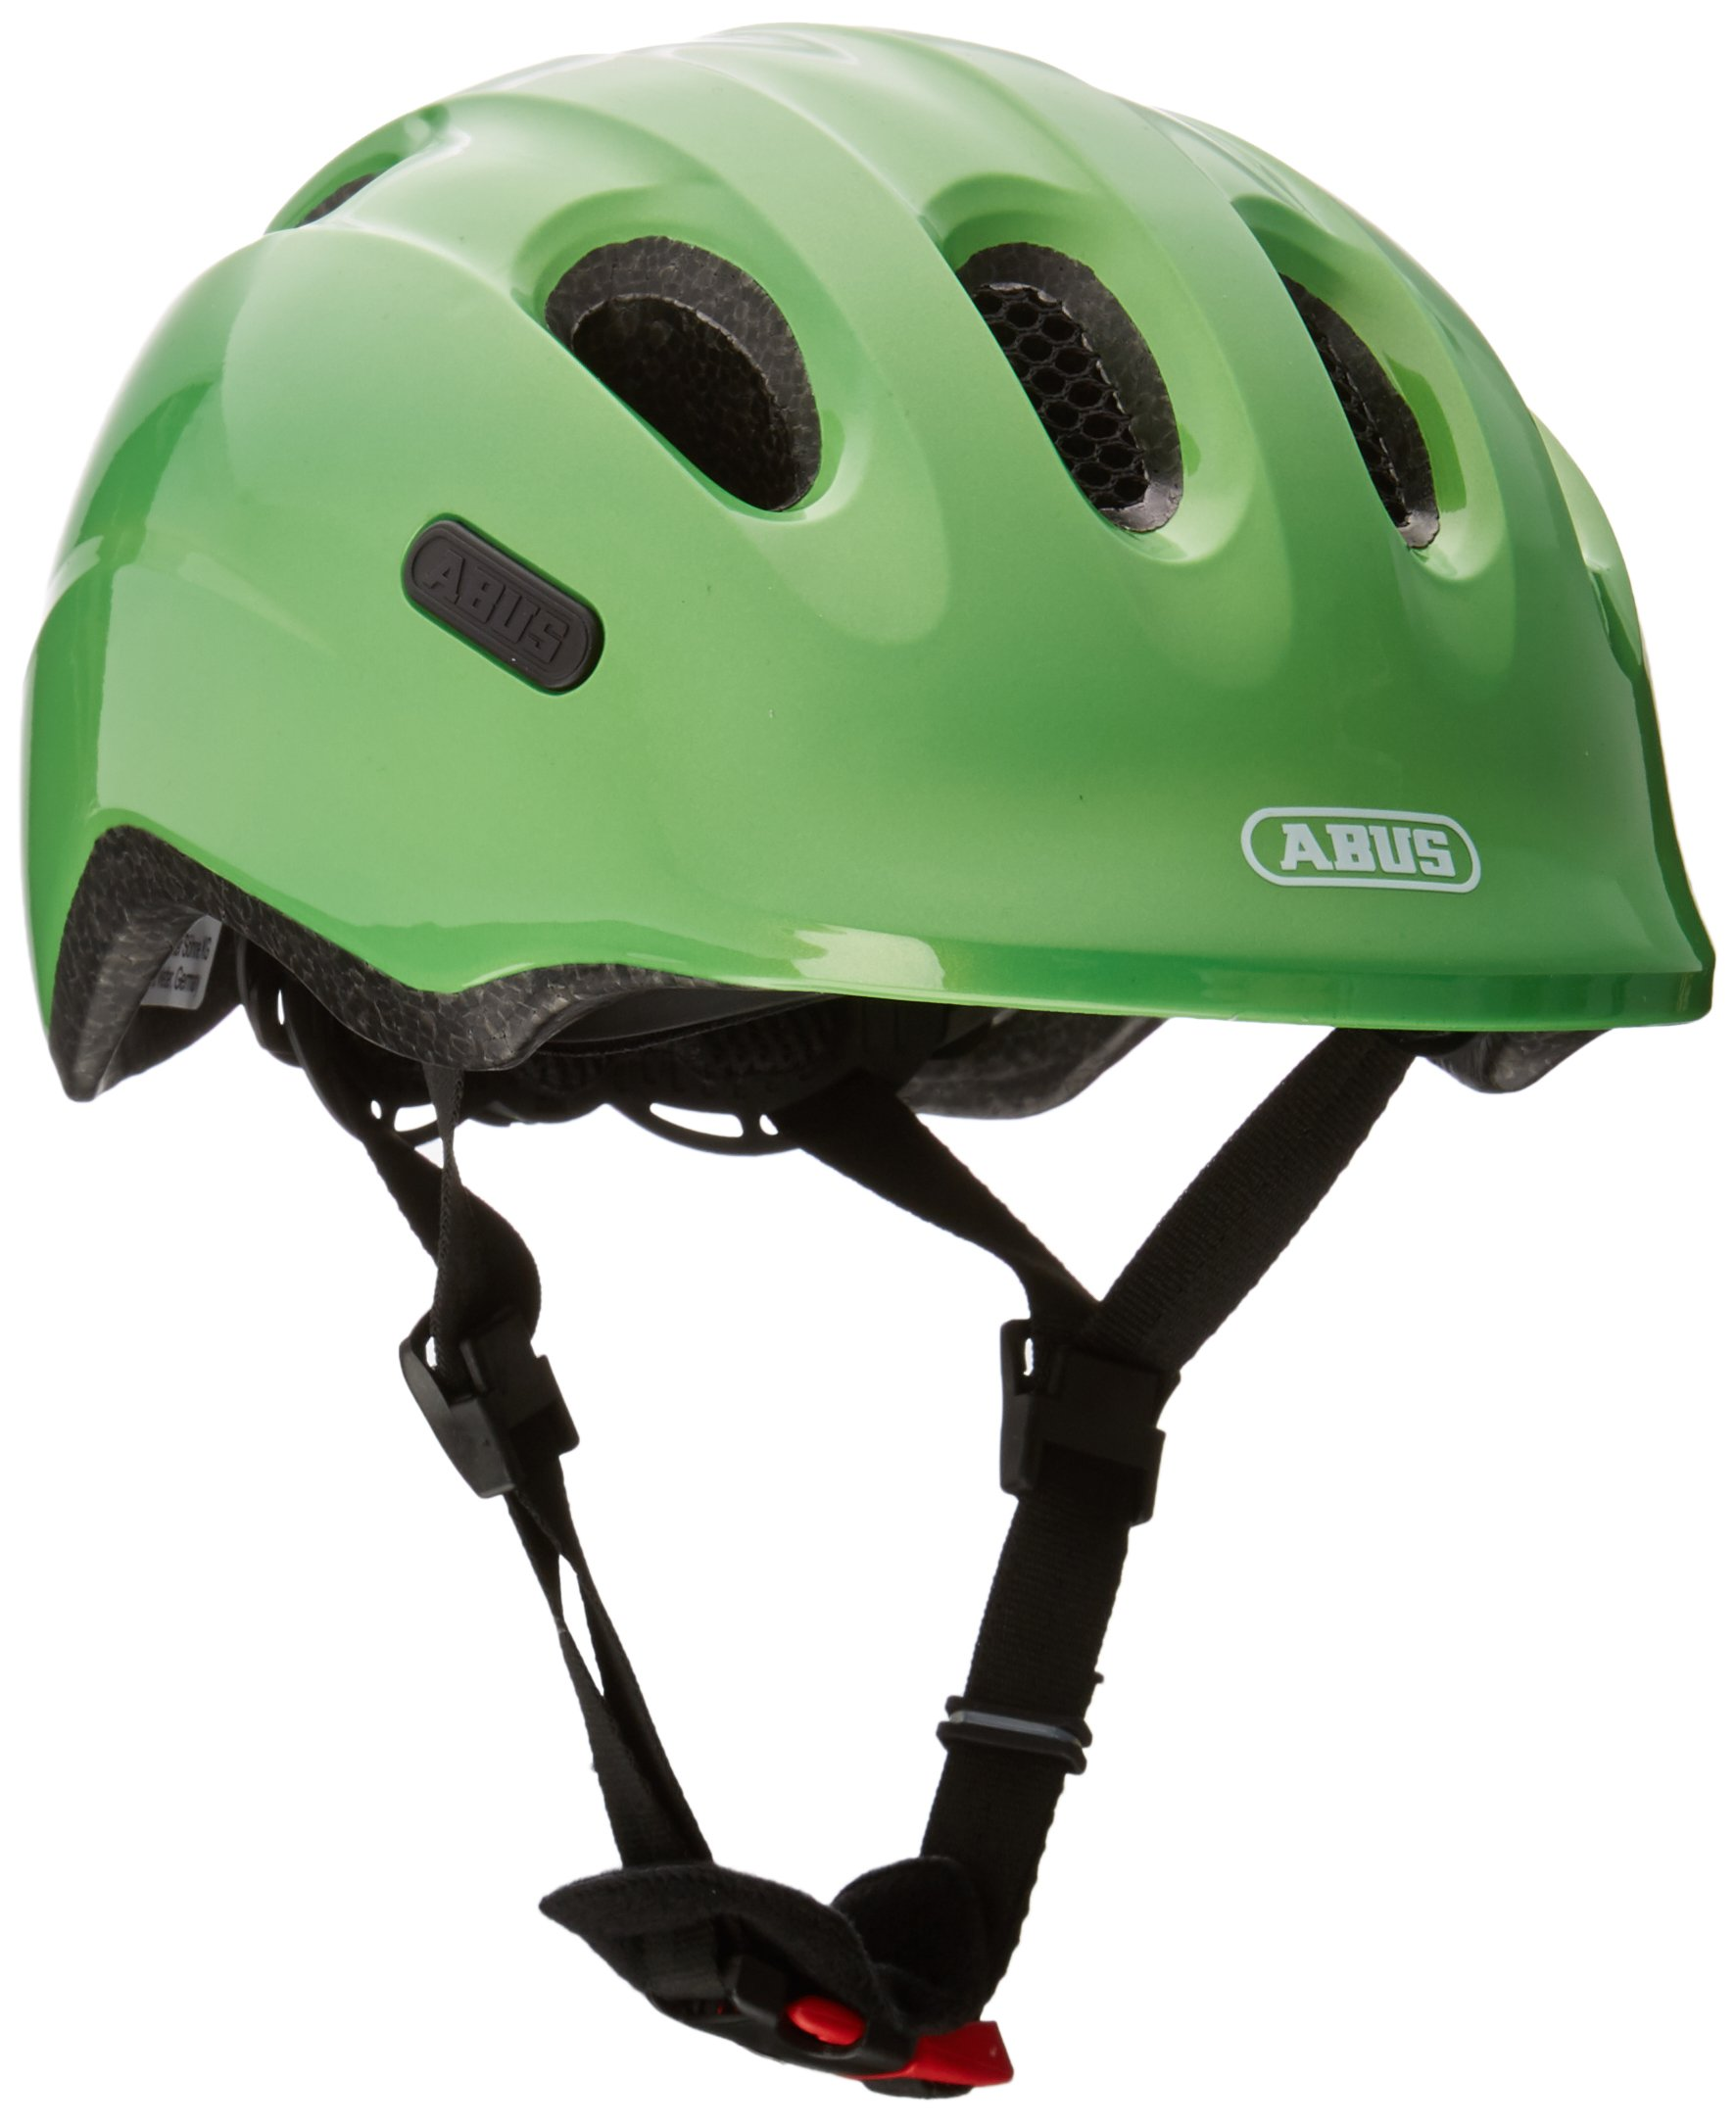 Abus-Casco-de-niño-Smiley